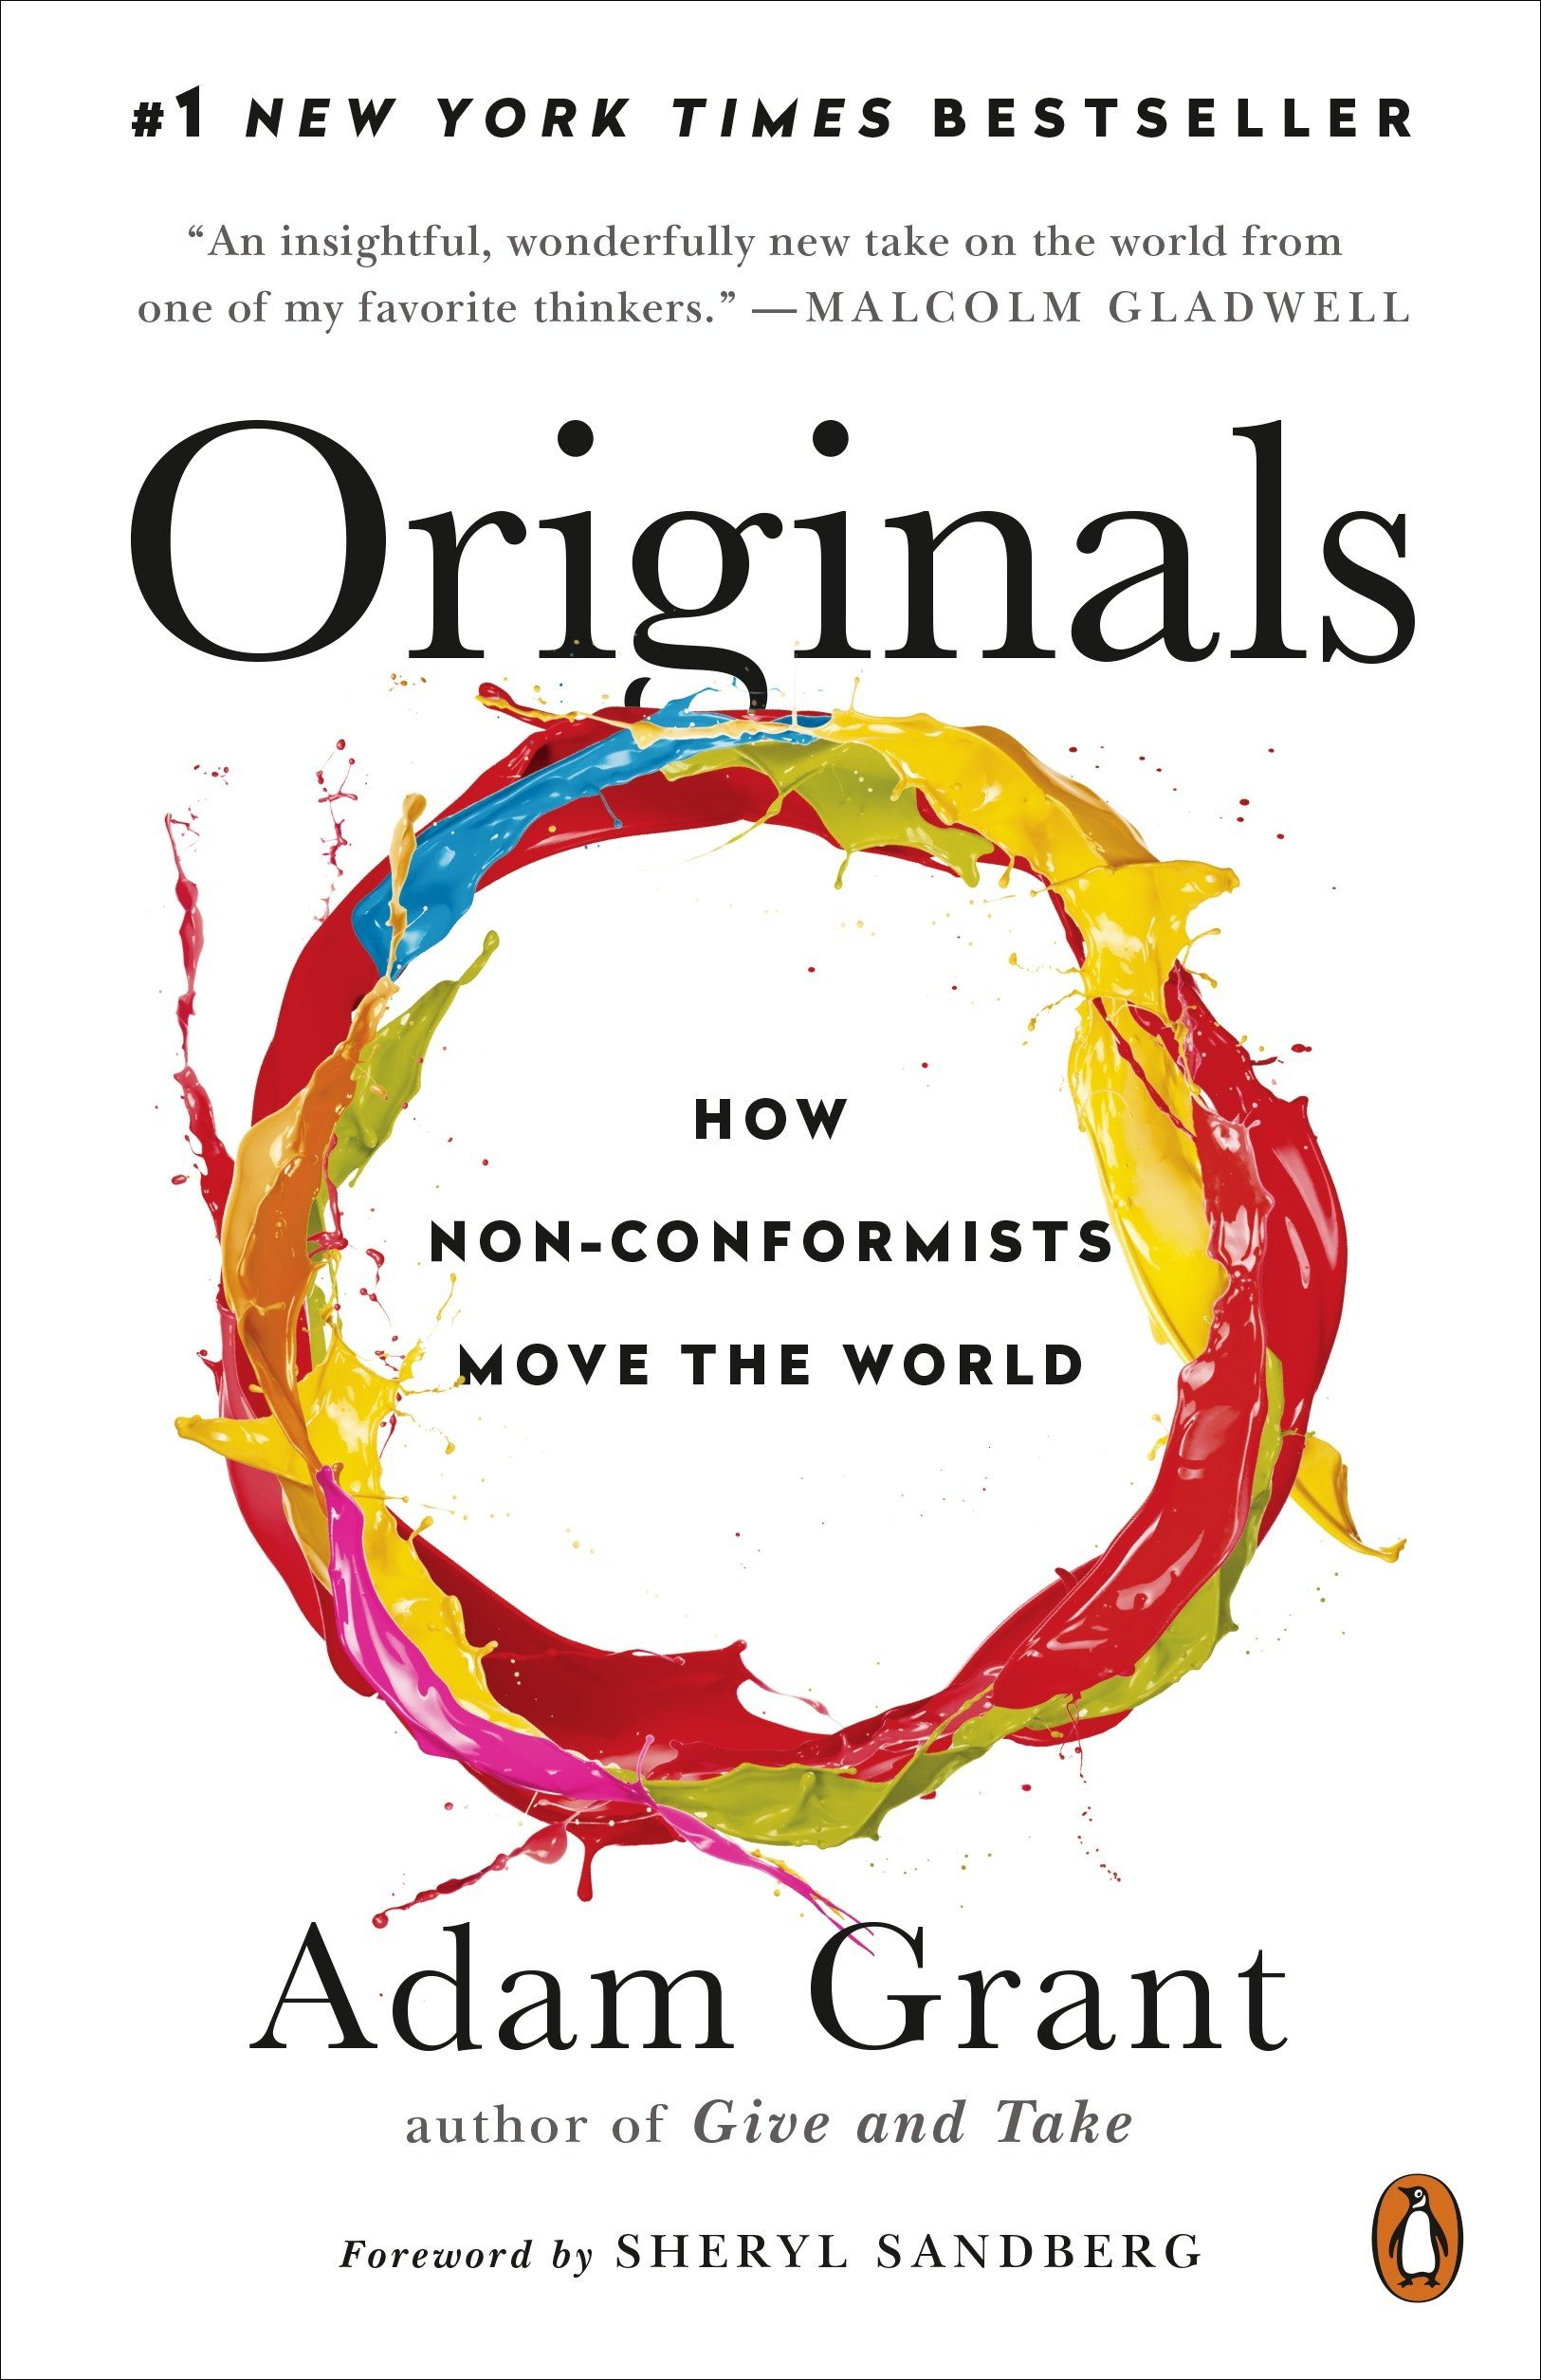 ORIGINALS: HOW NON-CONFORMISTS MOVE THE WORLD.